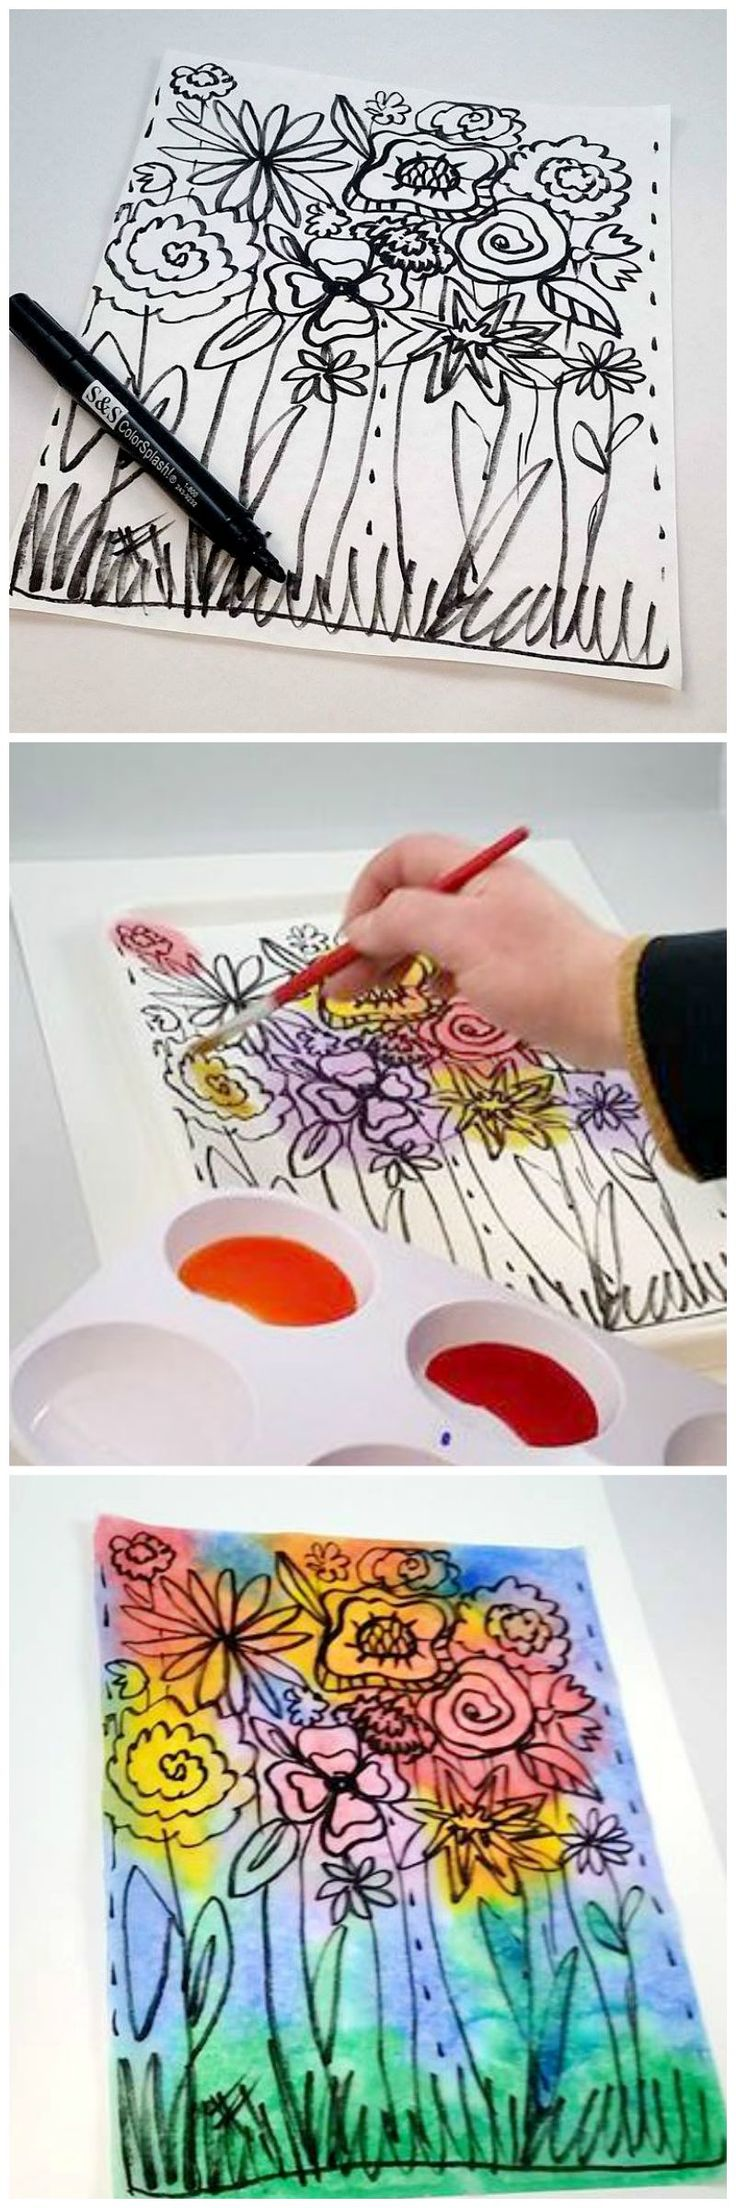 Watercolor paper coloring book - Only Three Materials Needed For This Easy Art Project Permanent Marker Diffusing Paper